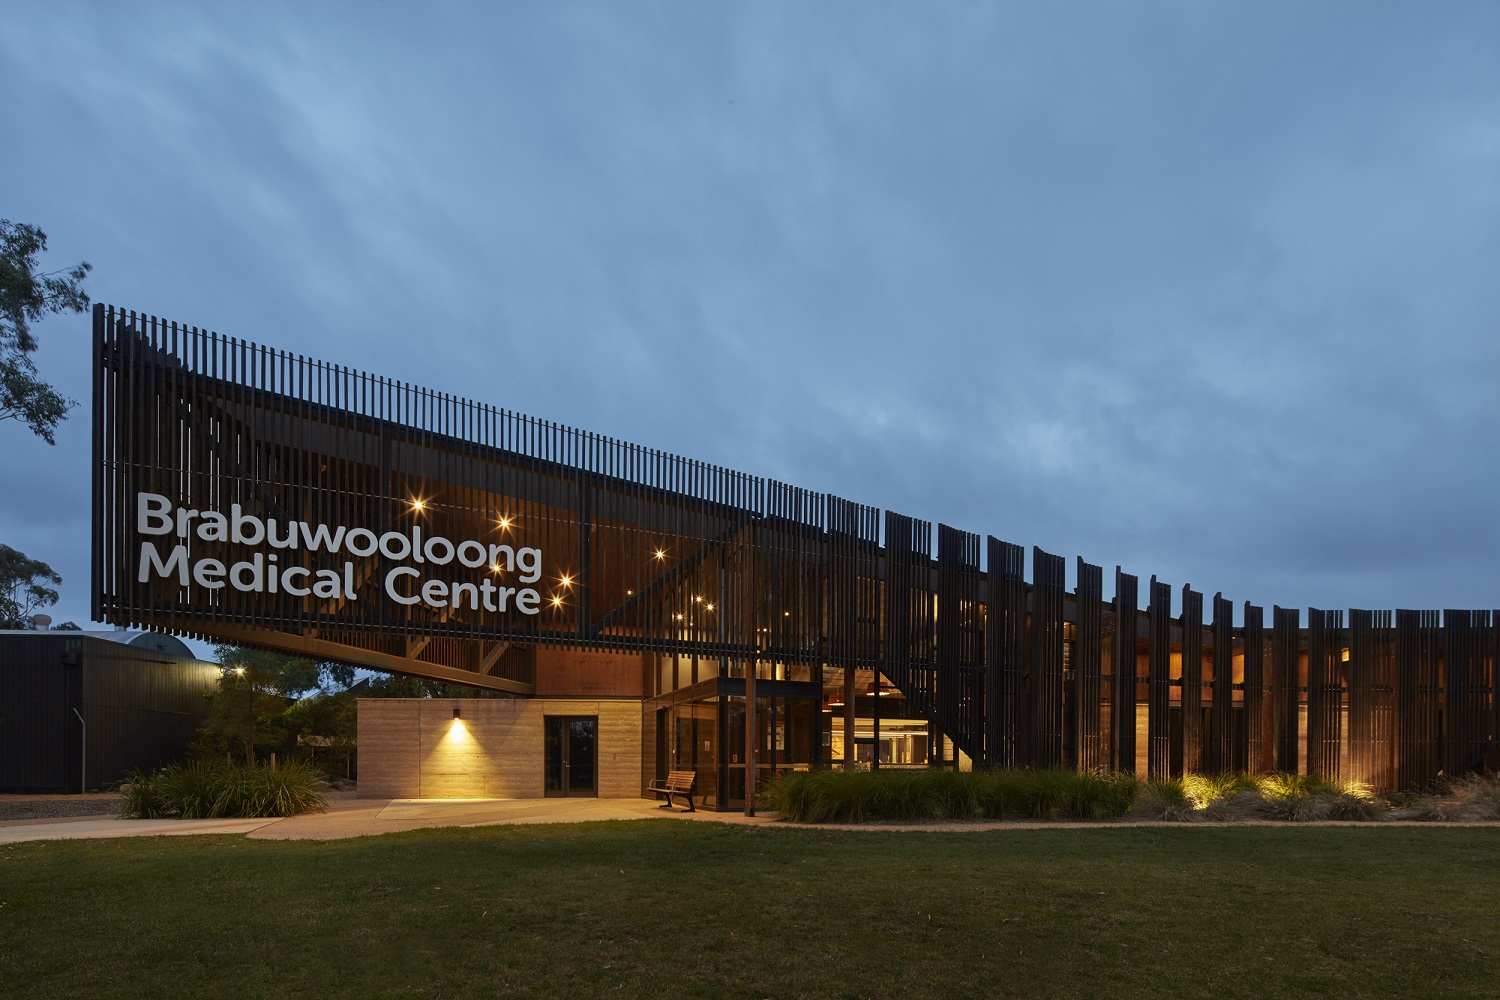 BC_Brabuwooloong_Medical_Centre_0510.jpg